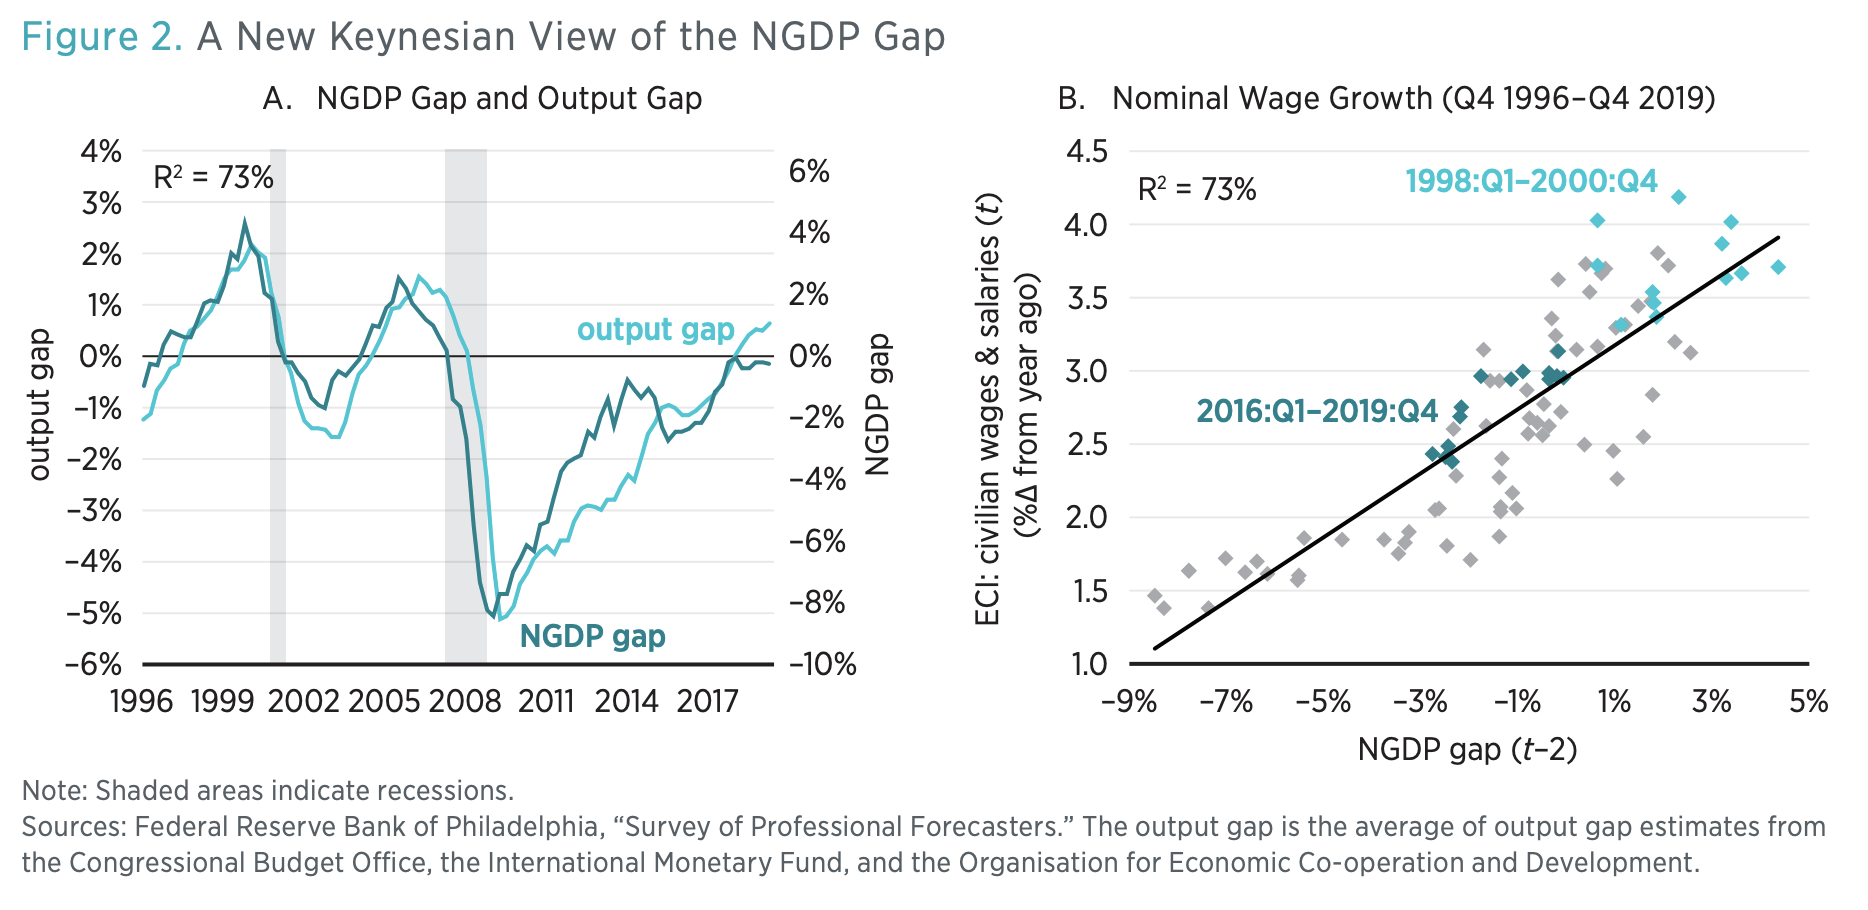 Figure 2. A New Keynesian View of the NGDP Gap